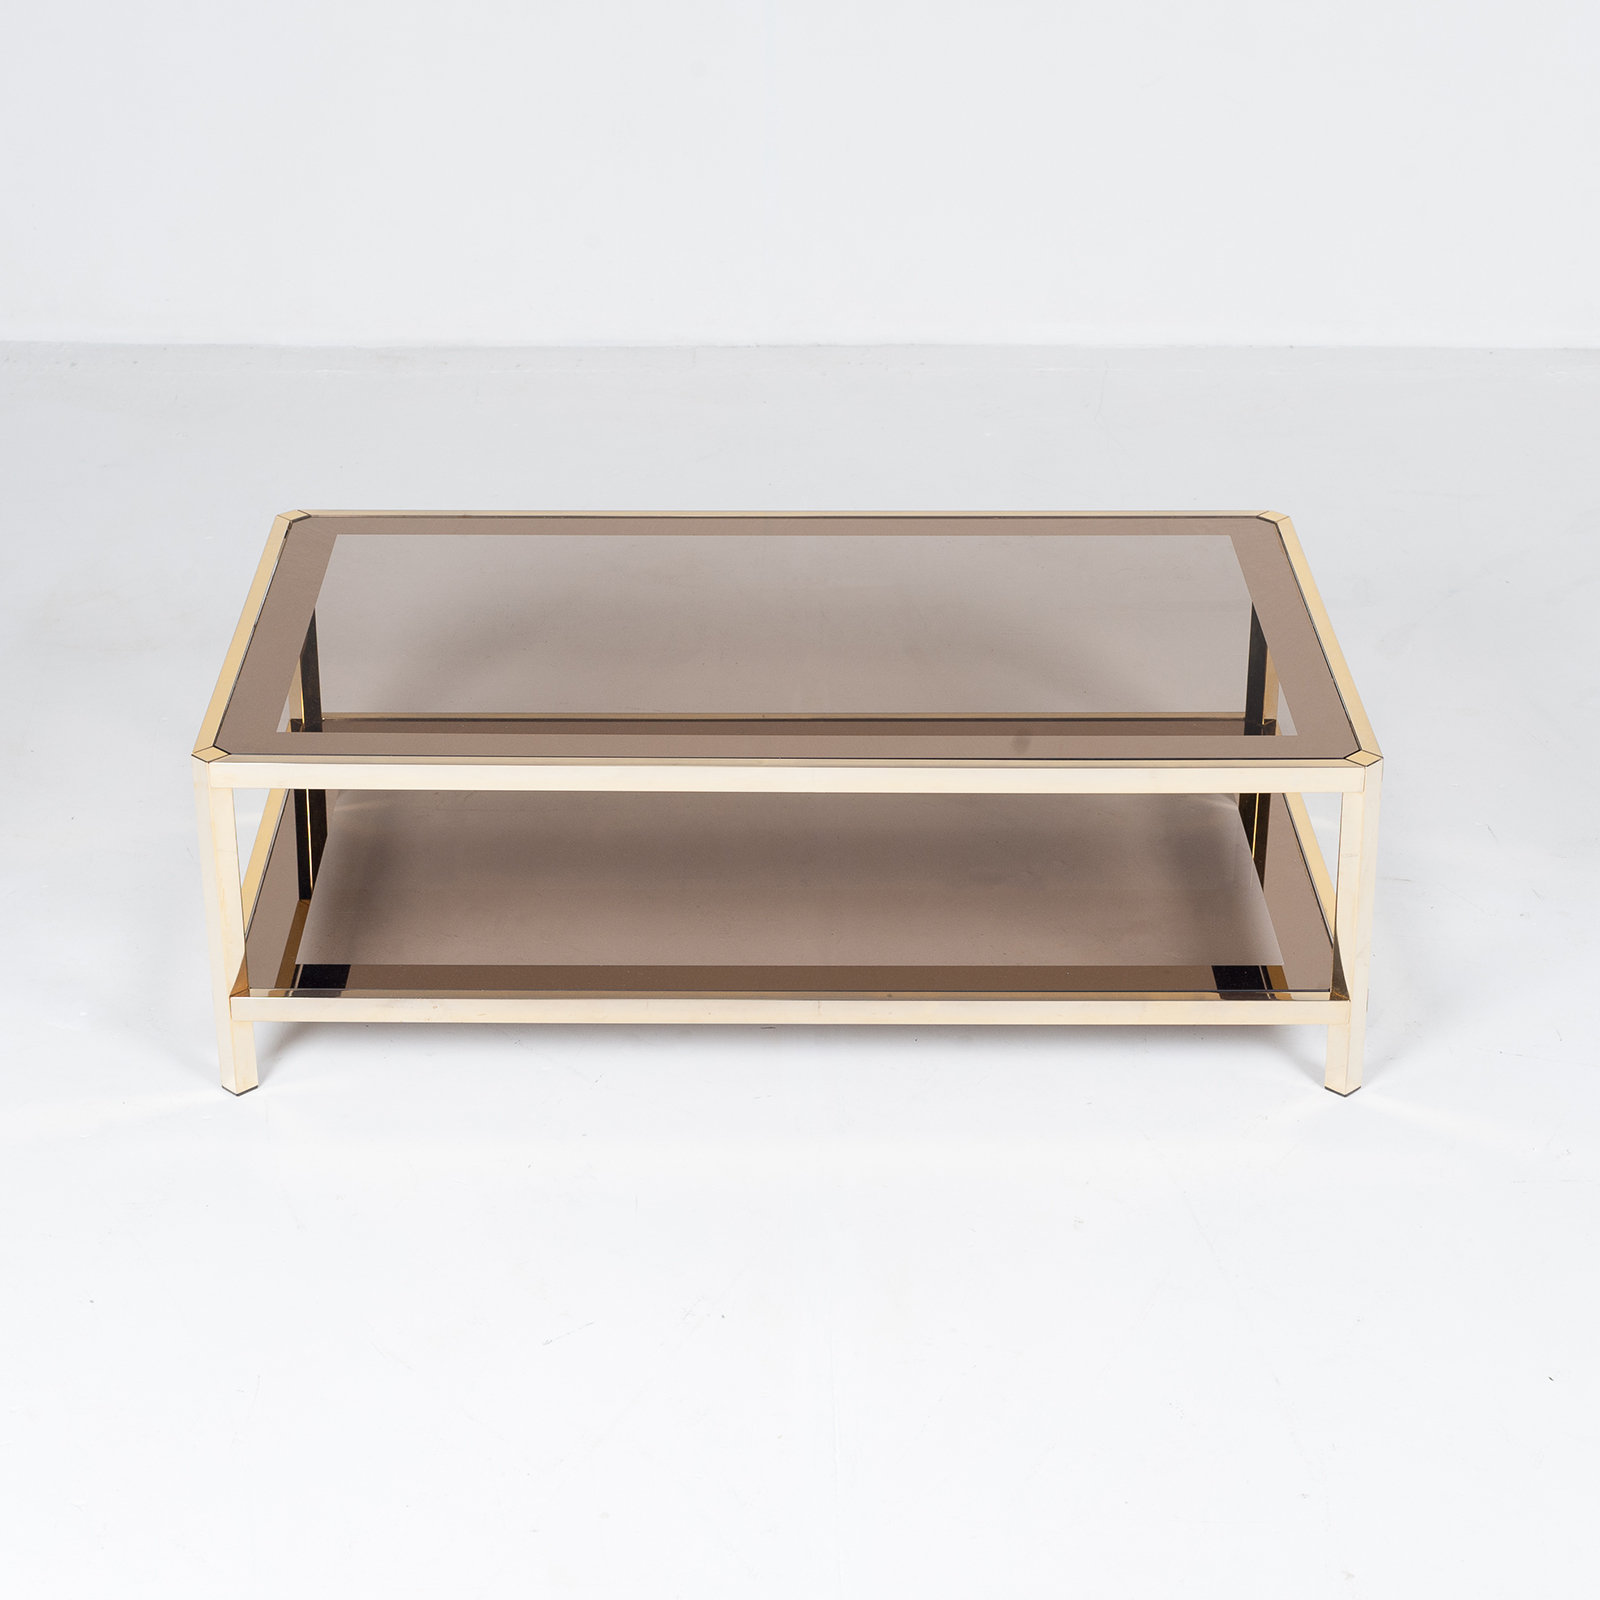 Rectangular Coffee Table By Pierre Cardin In Smoked Glass And Brass, 1960s, France18